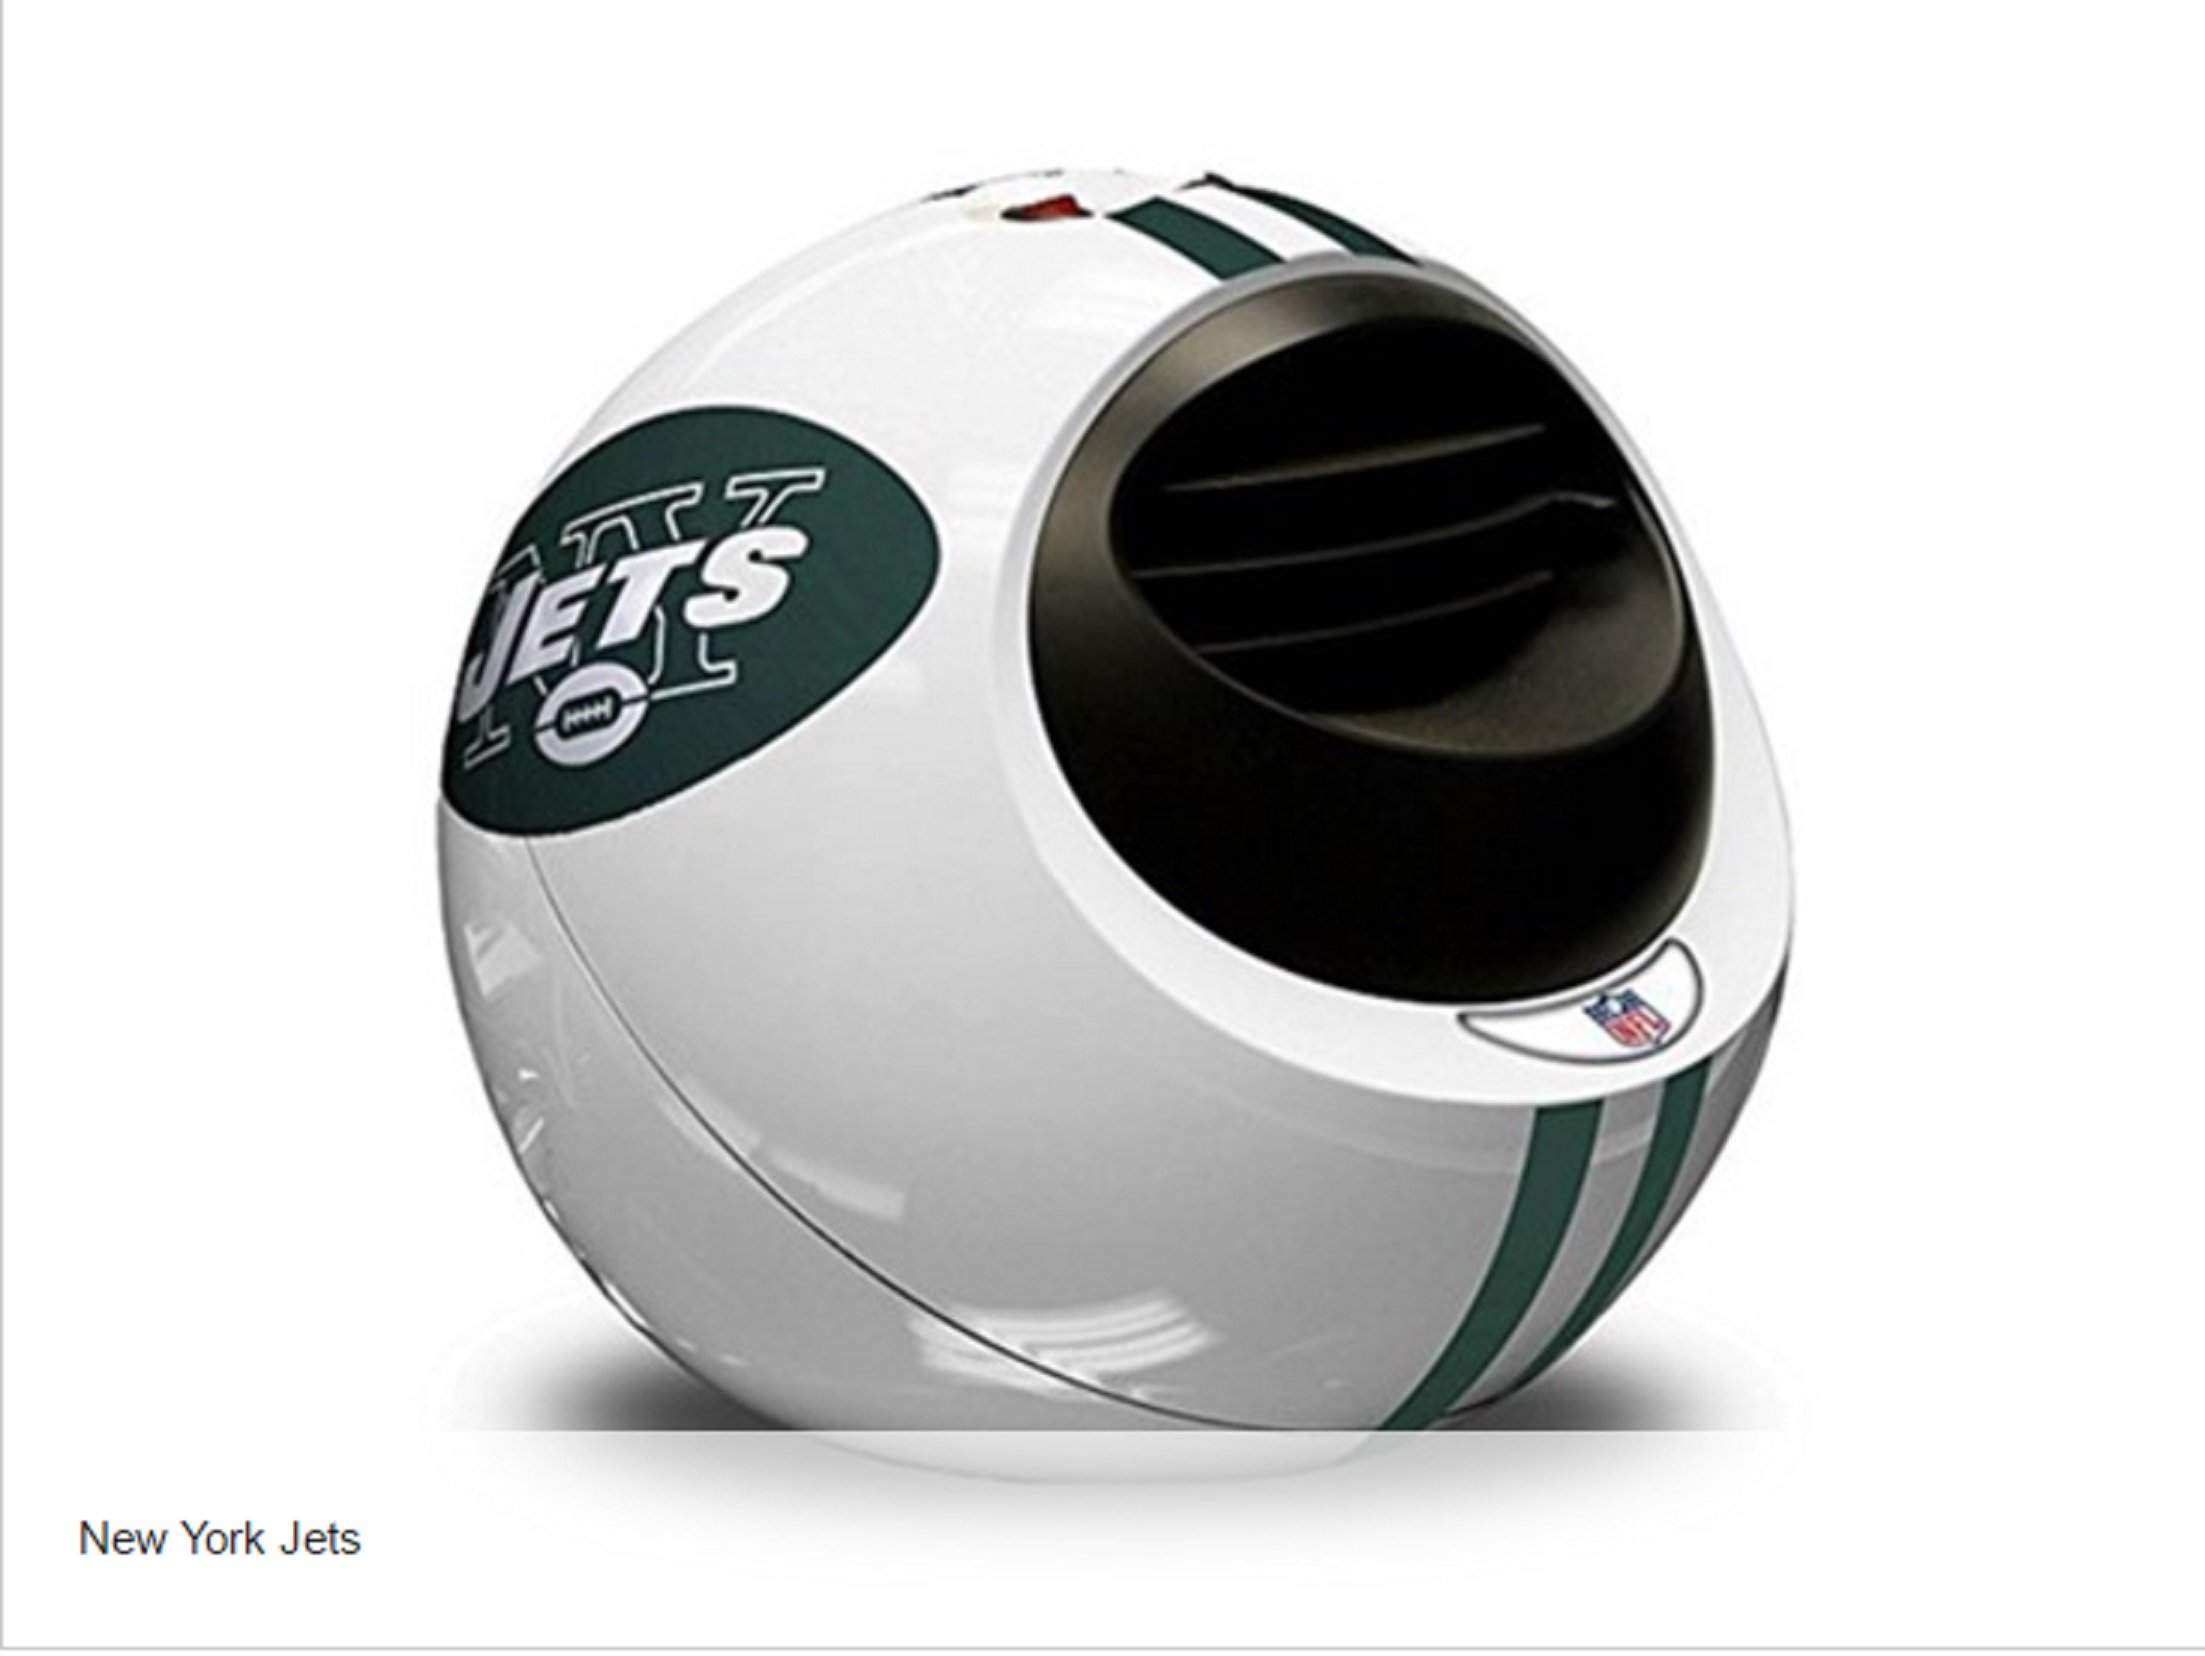 NFL New York Jets Portable Infrared Indoor Helmet Space Heater